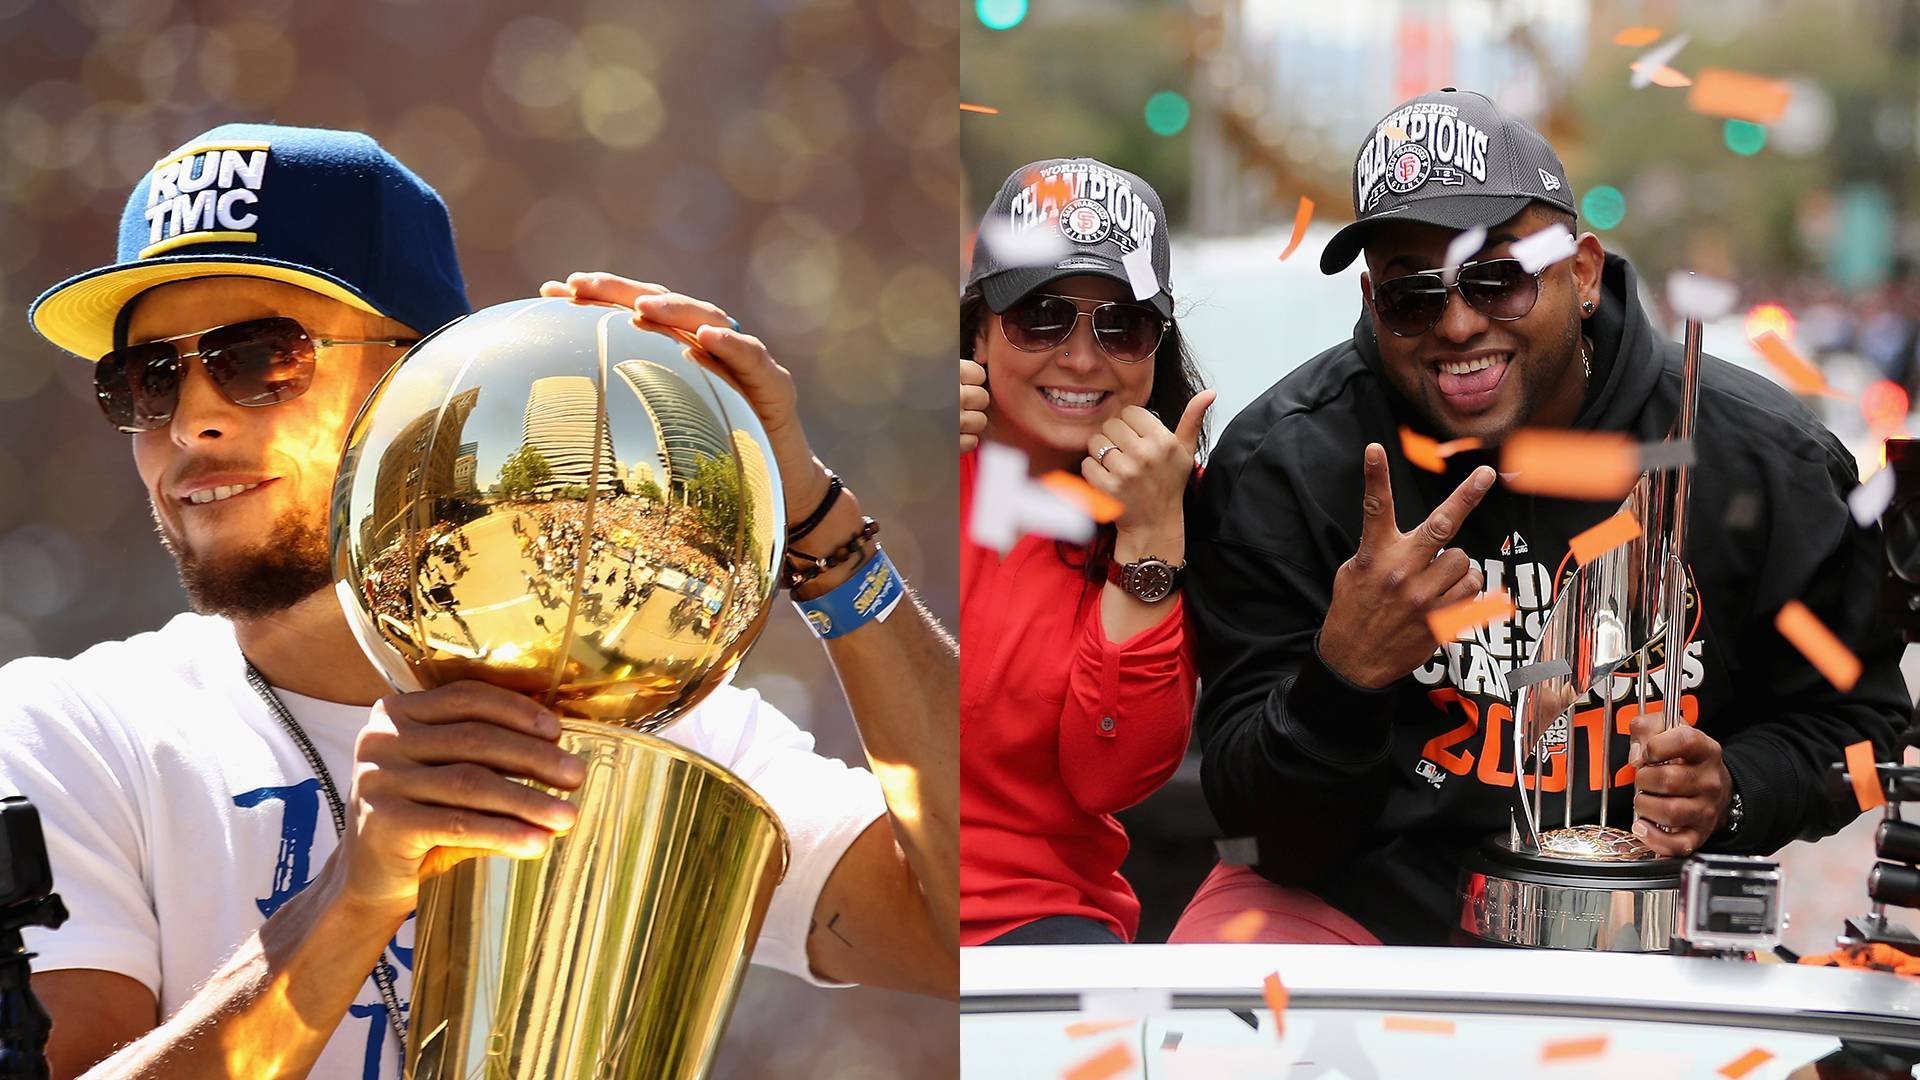 Left: Steph Curry at the Golden State Warriors victory parade in Oakland in 2018. Right: Pablo Sandoval at the San Francisco Giants World Series victory parade in 2012. Ezra Shaw/Getty Images